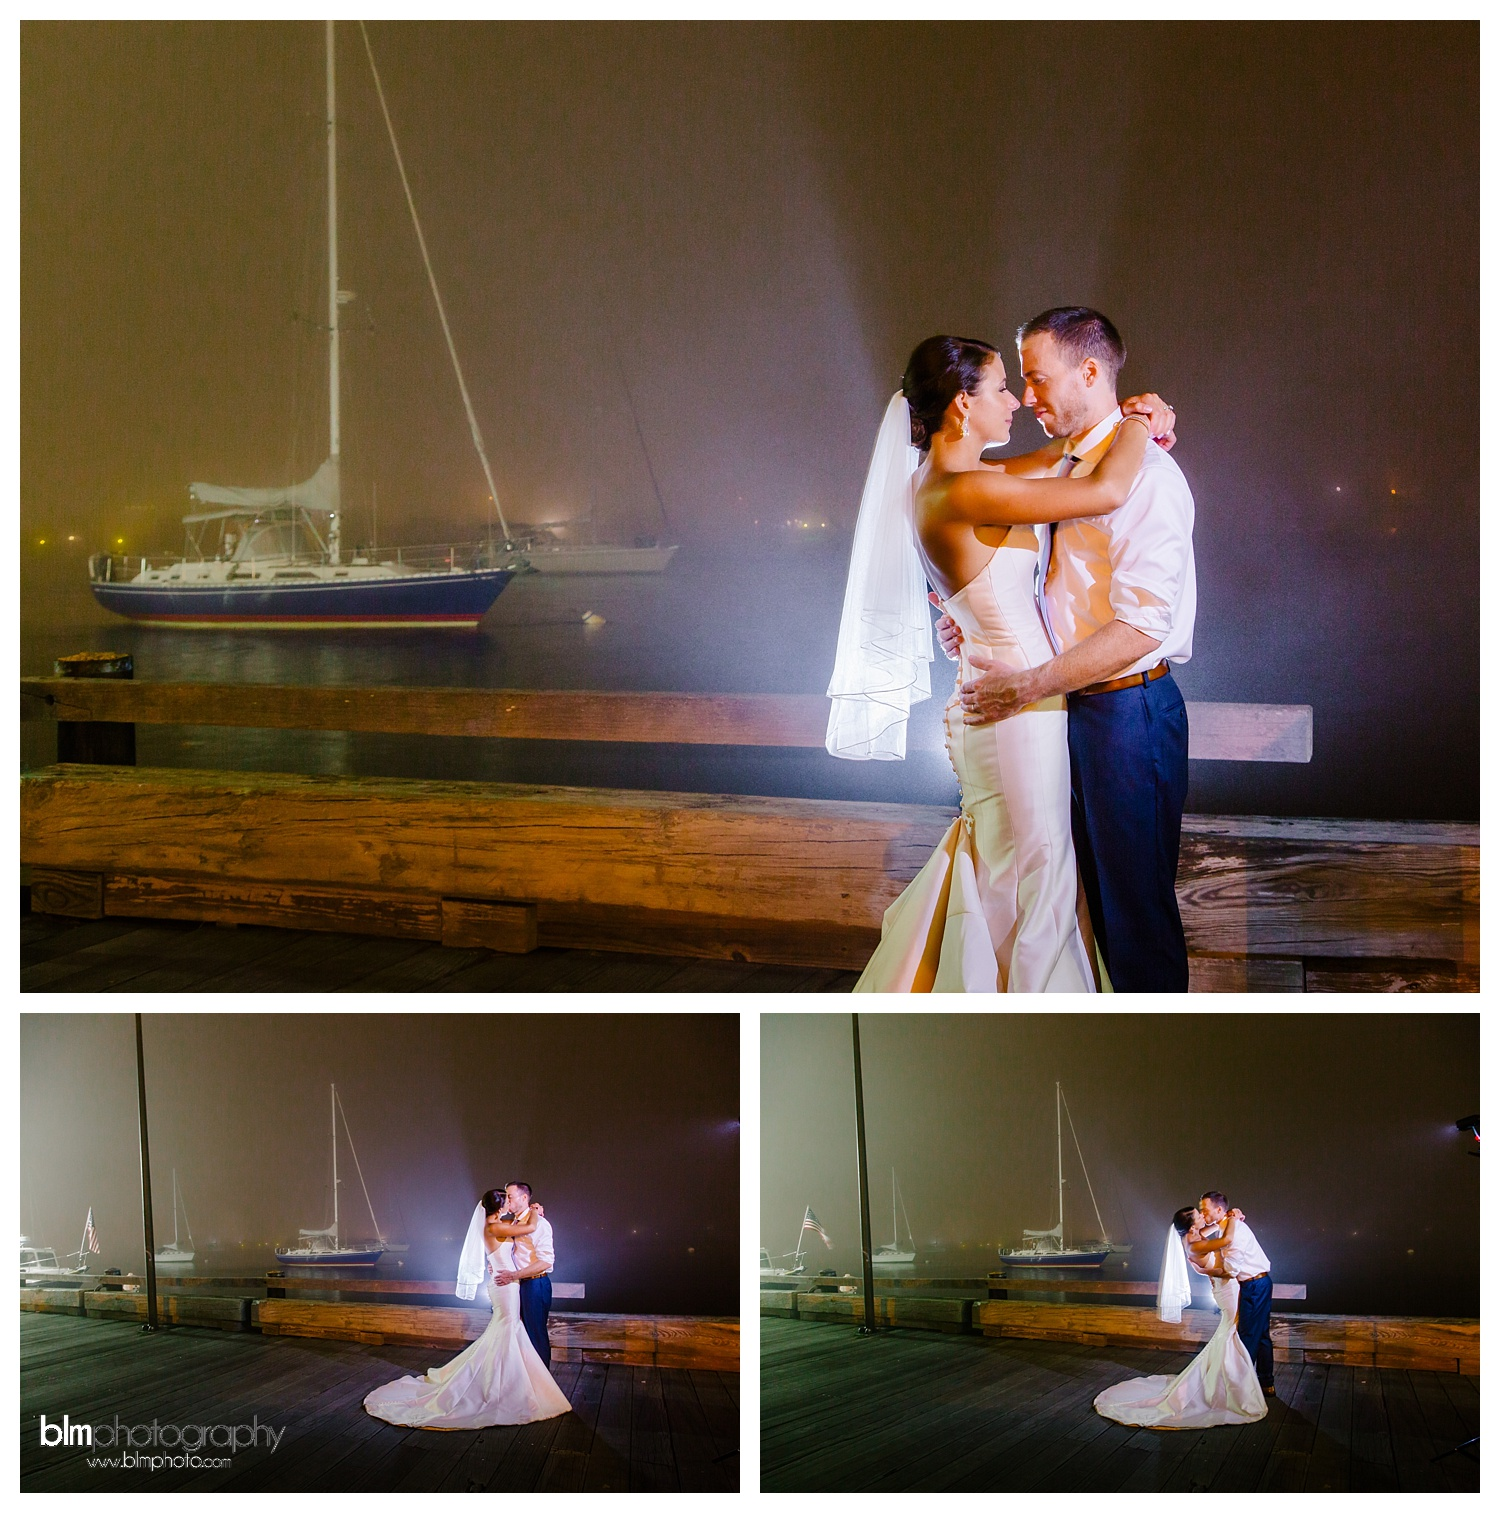 378Nathalie & Kirwan Married at The Maritime Museum_20170916_5890.jpg